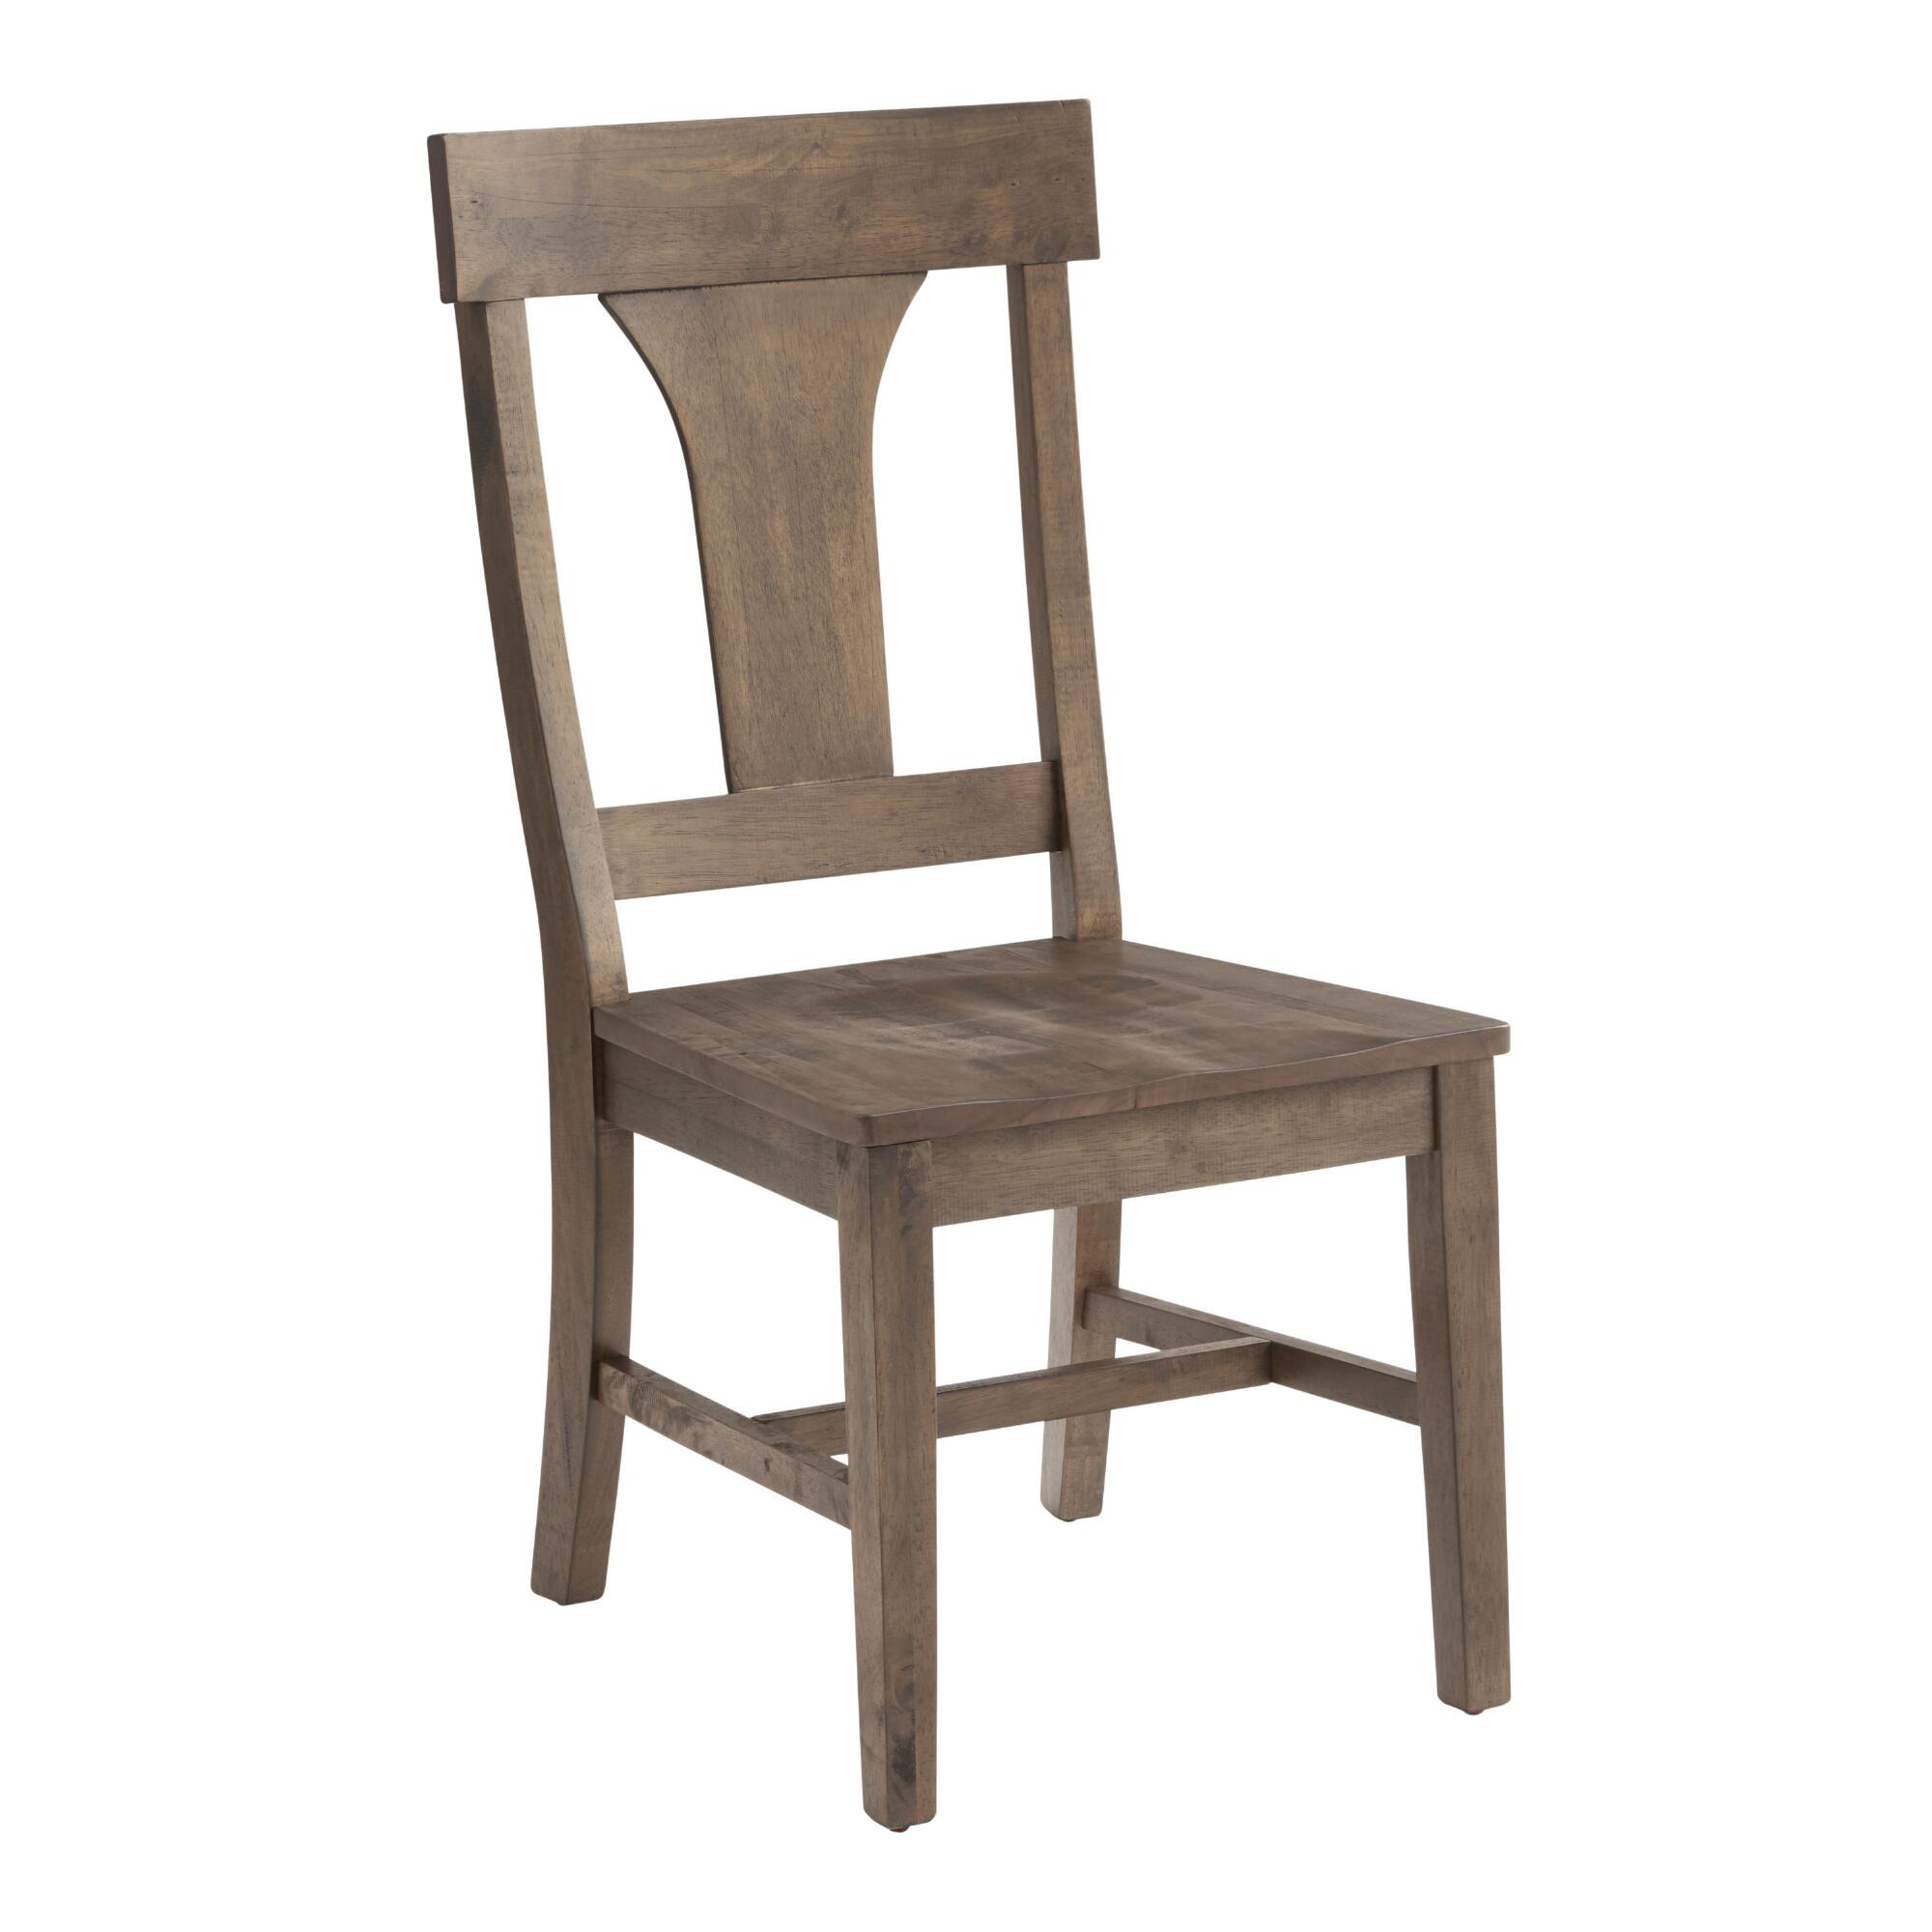 Rustic wood brinley dining chairs set of 2 world market